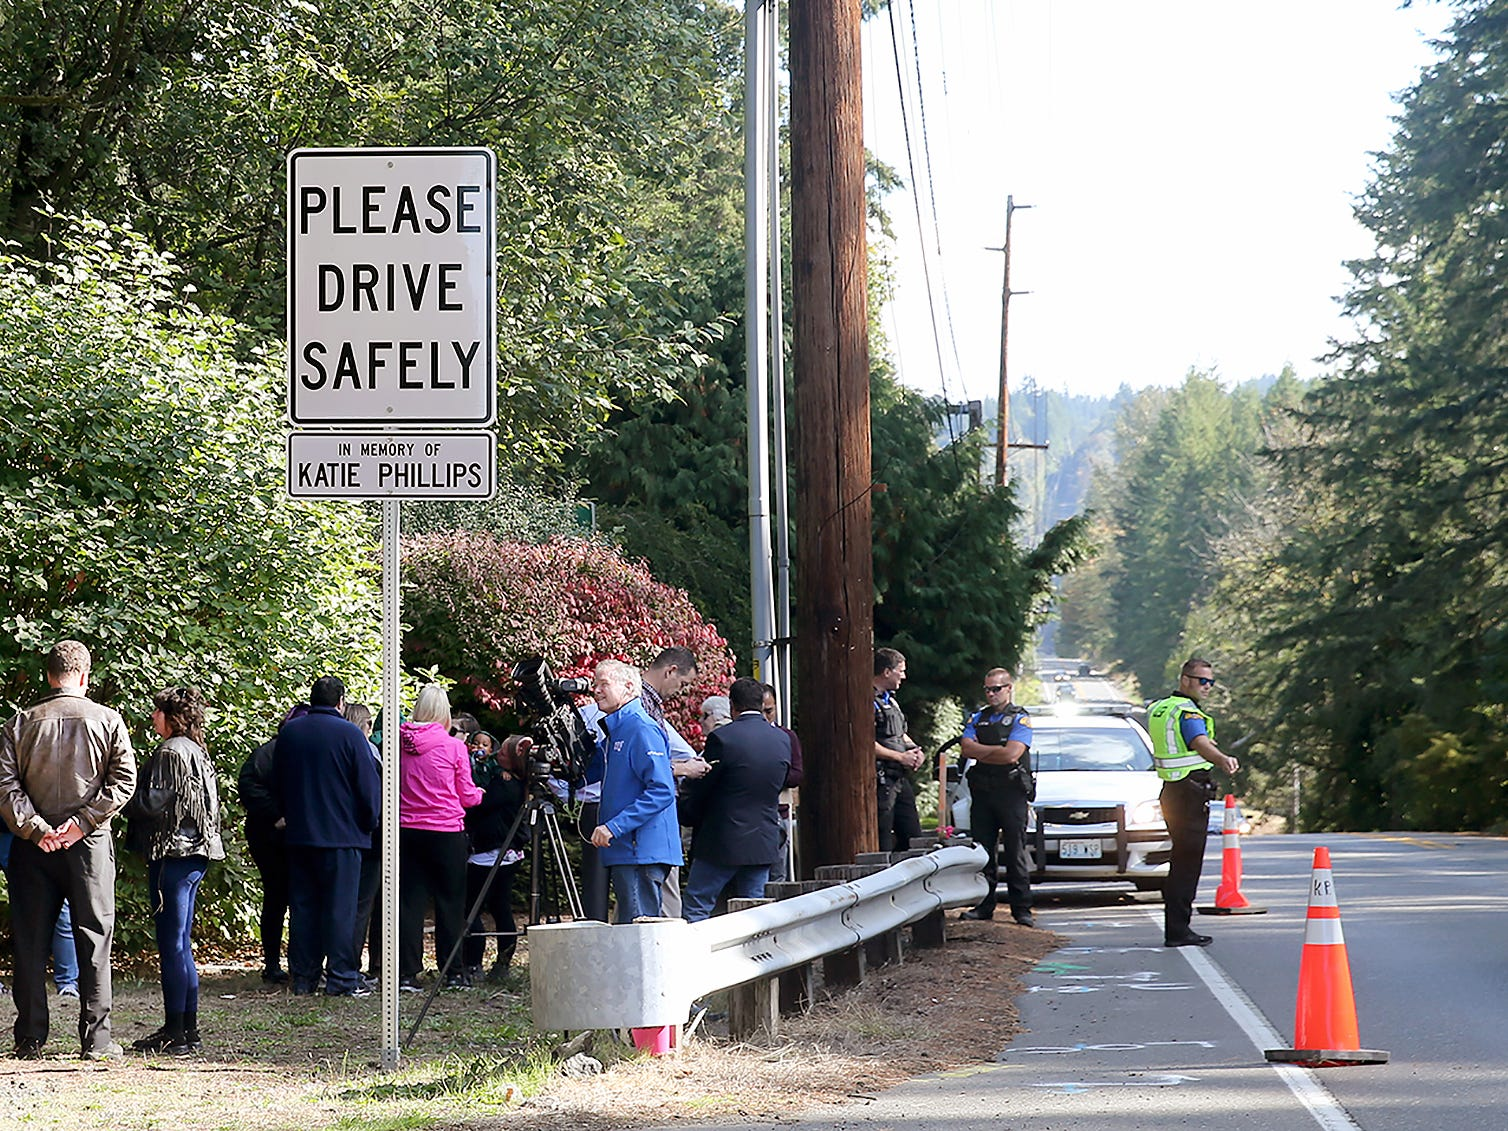 A memorial sign for Washington State Ferries employee Katie Phillips was unveiled on the shoulder the Highway 160 site near Long Lake in Port Orchard, on Thursday, October 4, 2018.